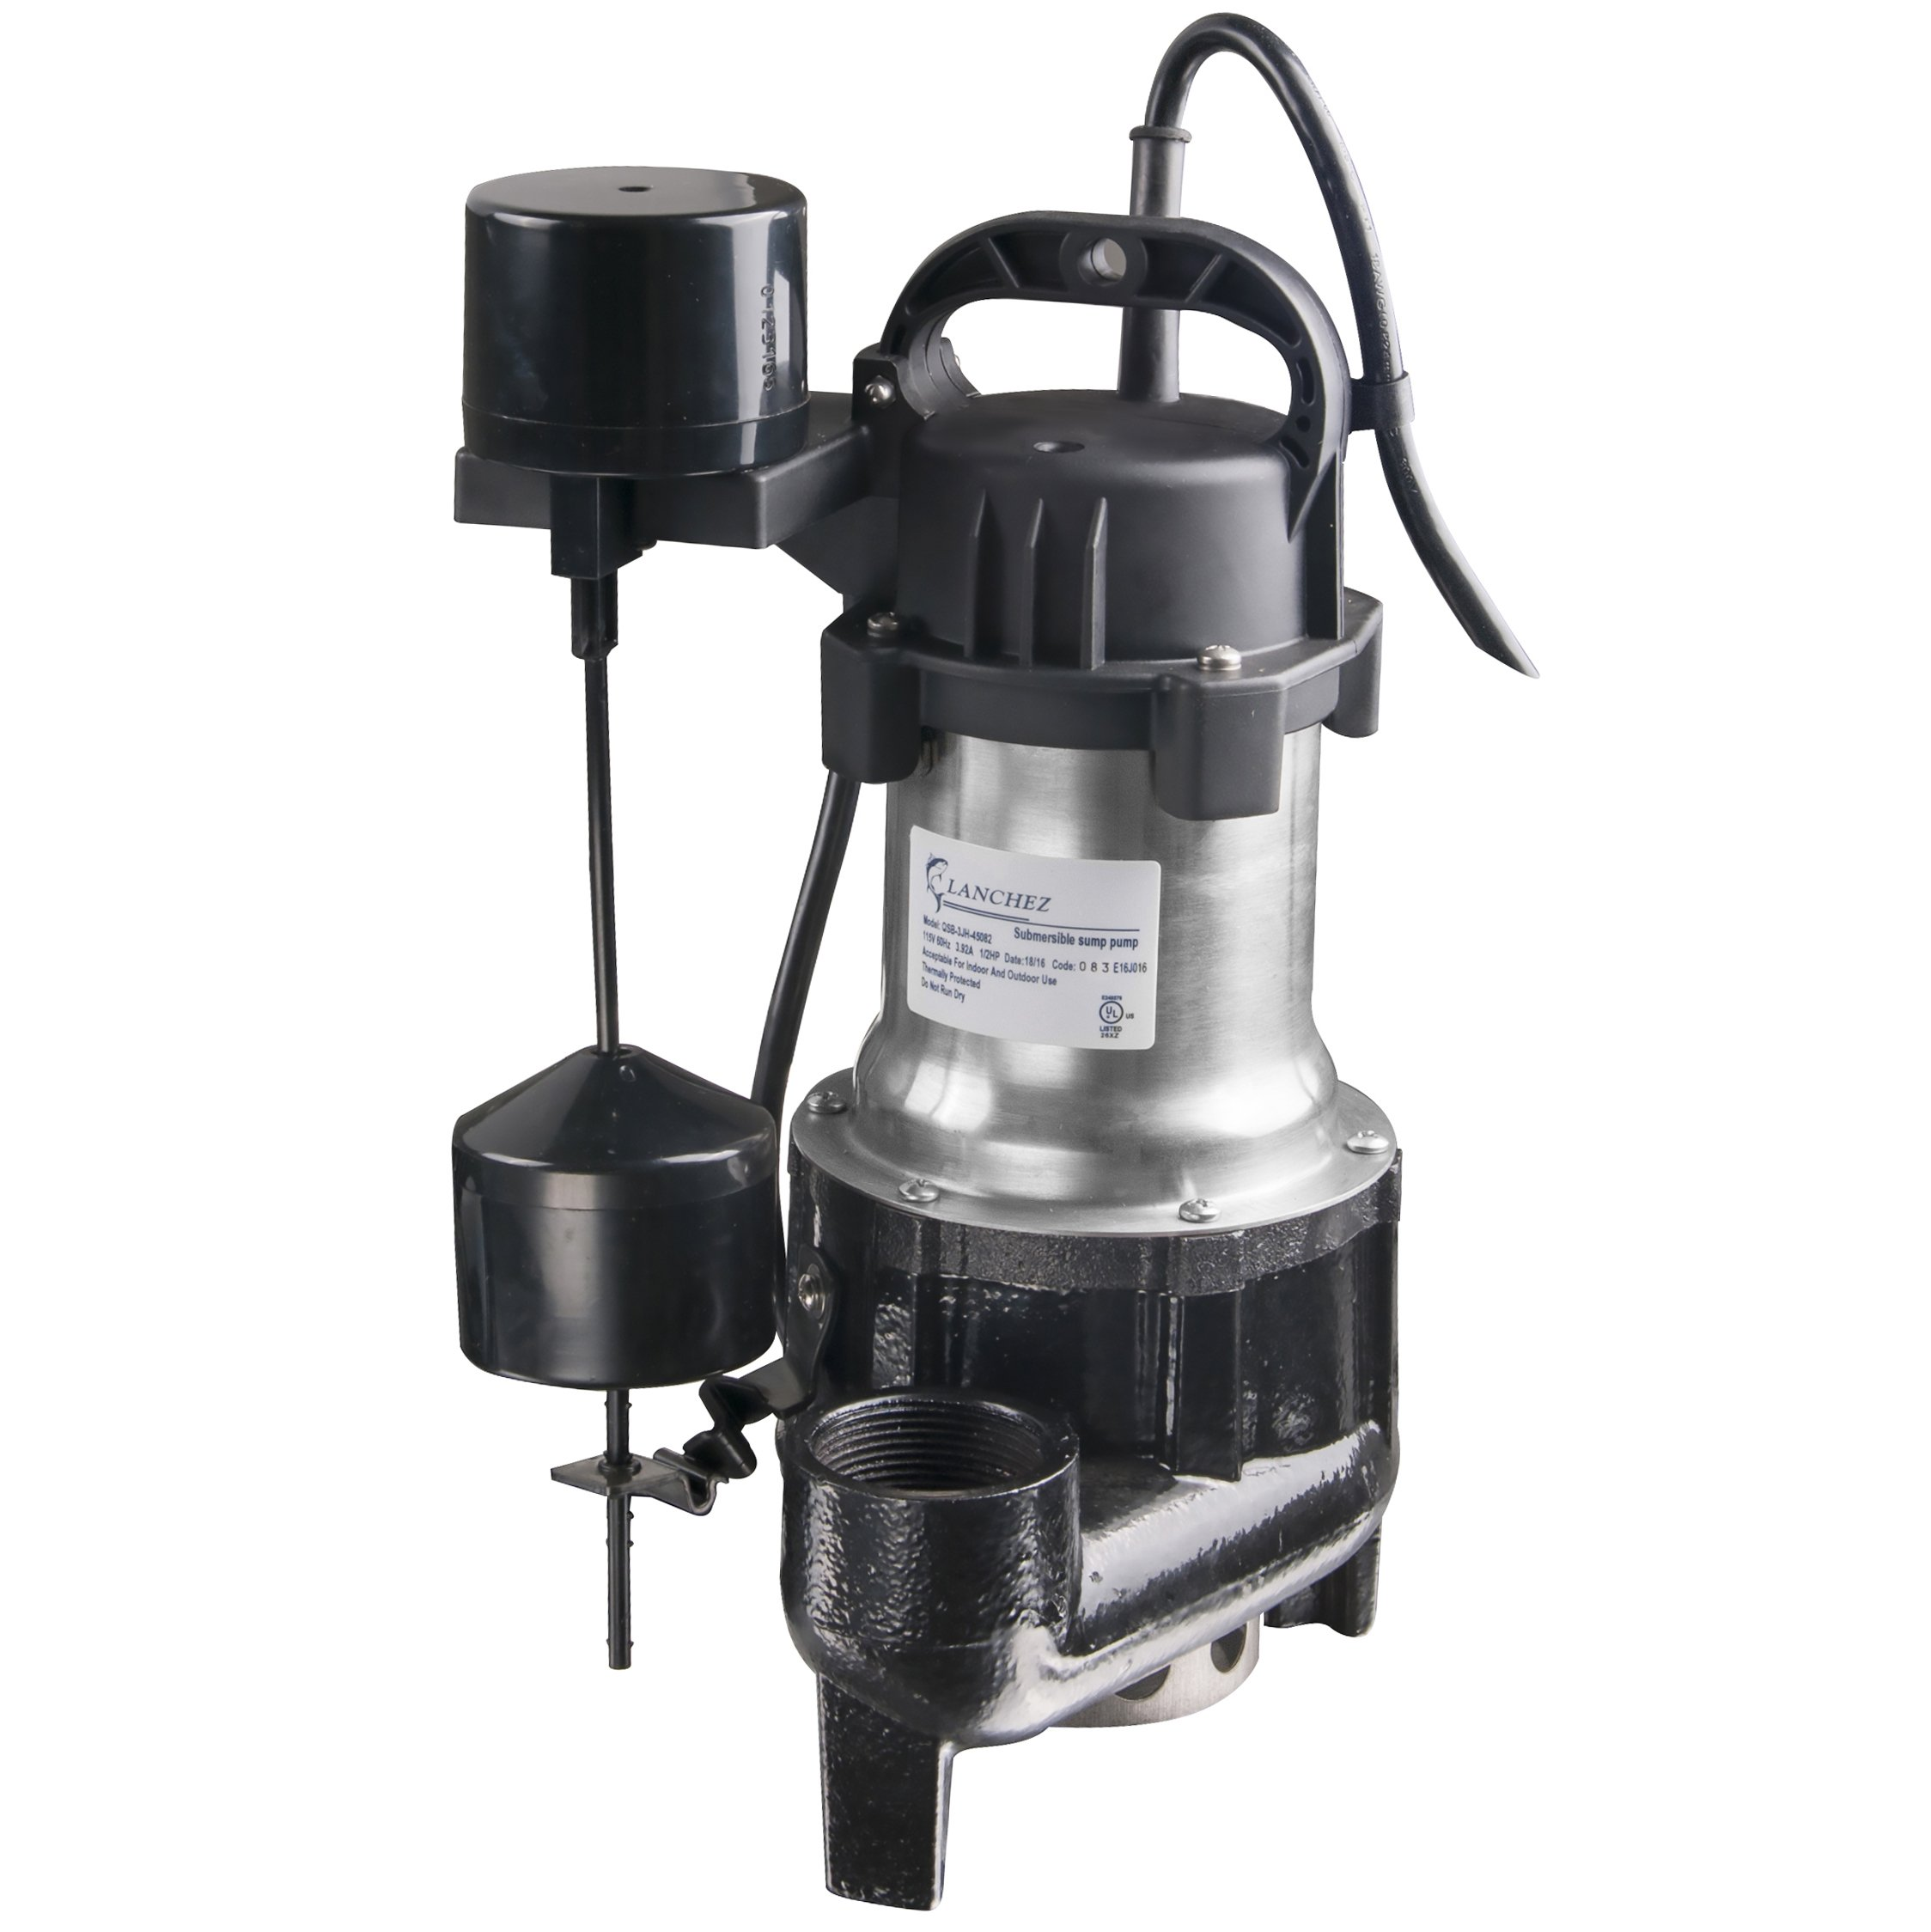 Lanchez Q450B82V Stainless Steel and Cast Iron Submersible Sump Pump Sewage Pump With Float Switch for Dirty Water